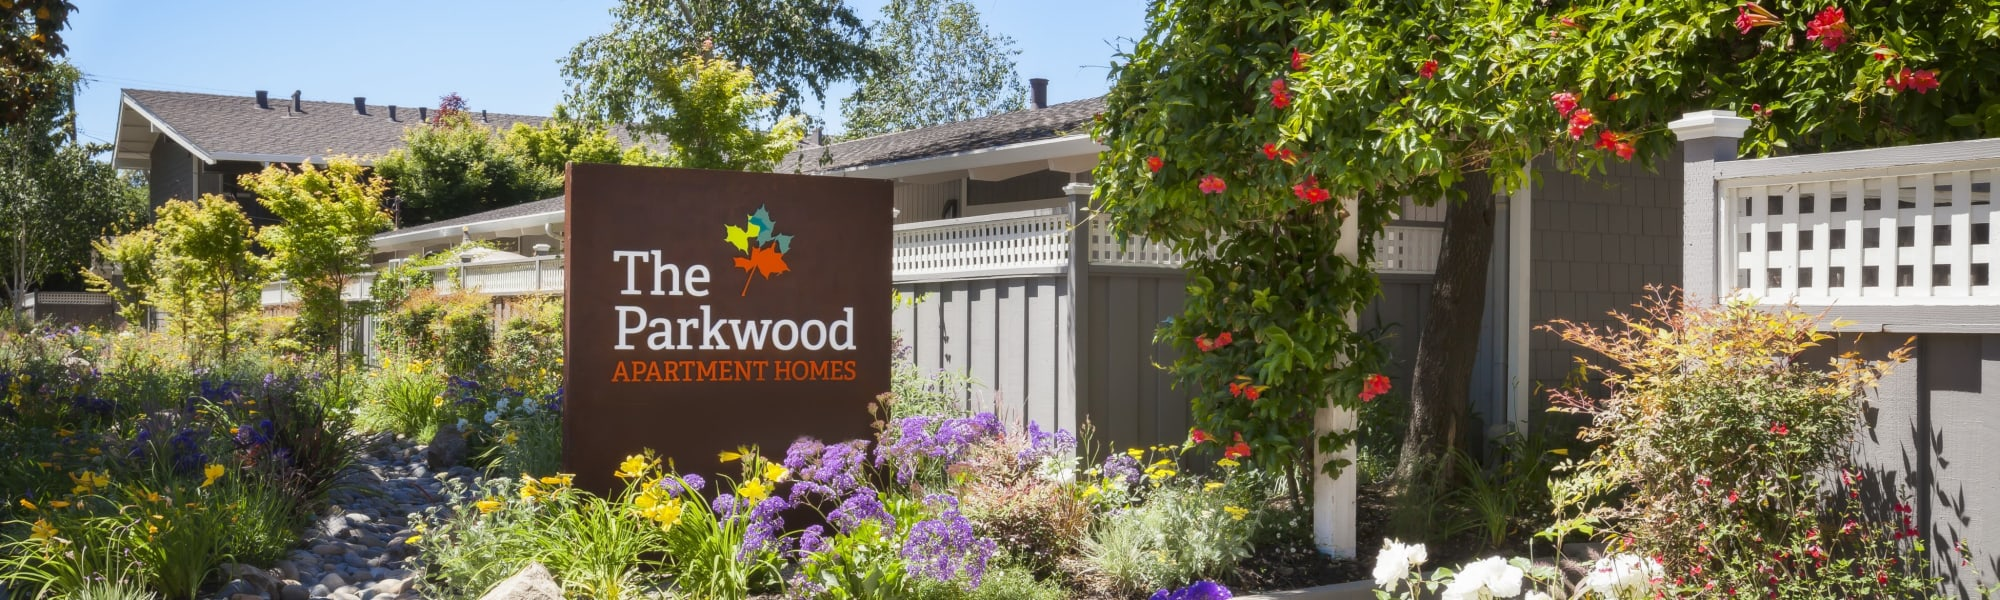 Amenities at Parkwood Apartments in Sunnyvale, California